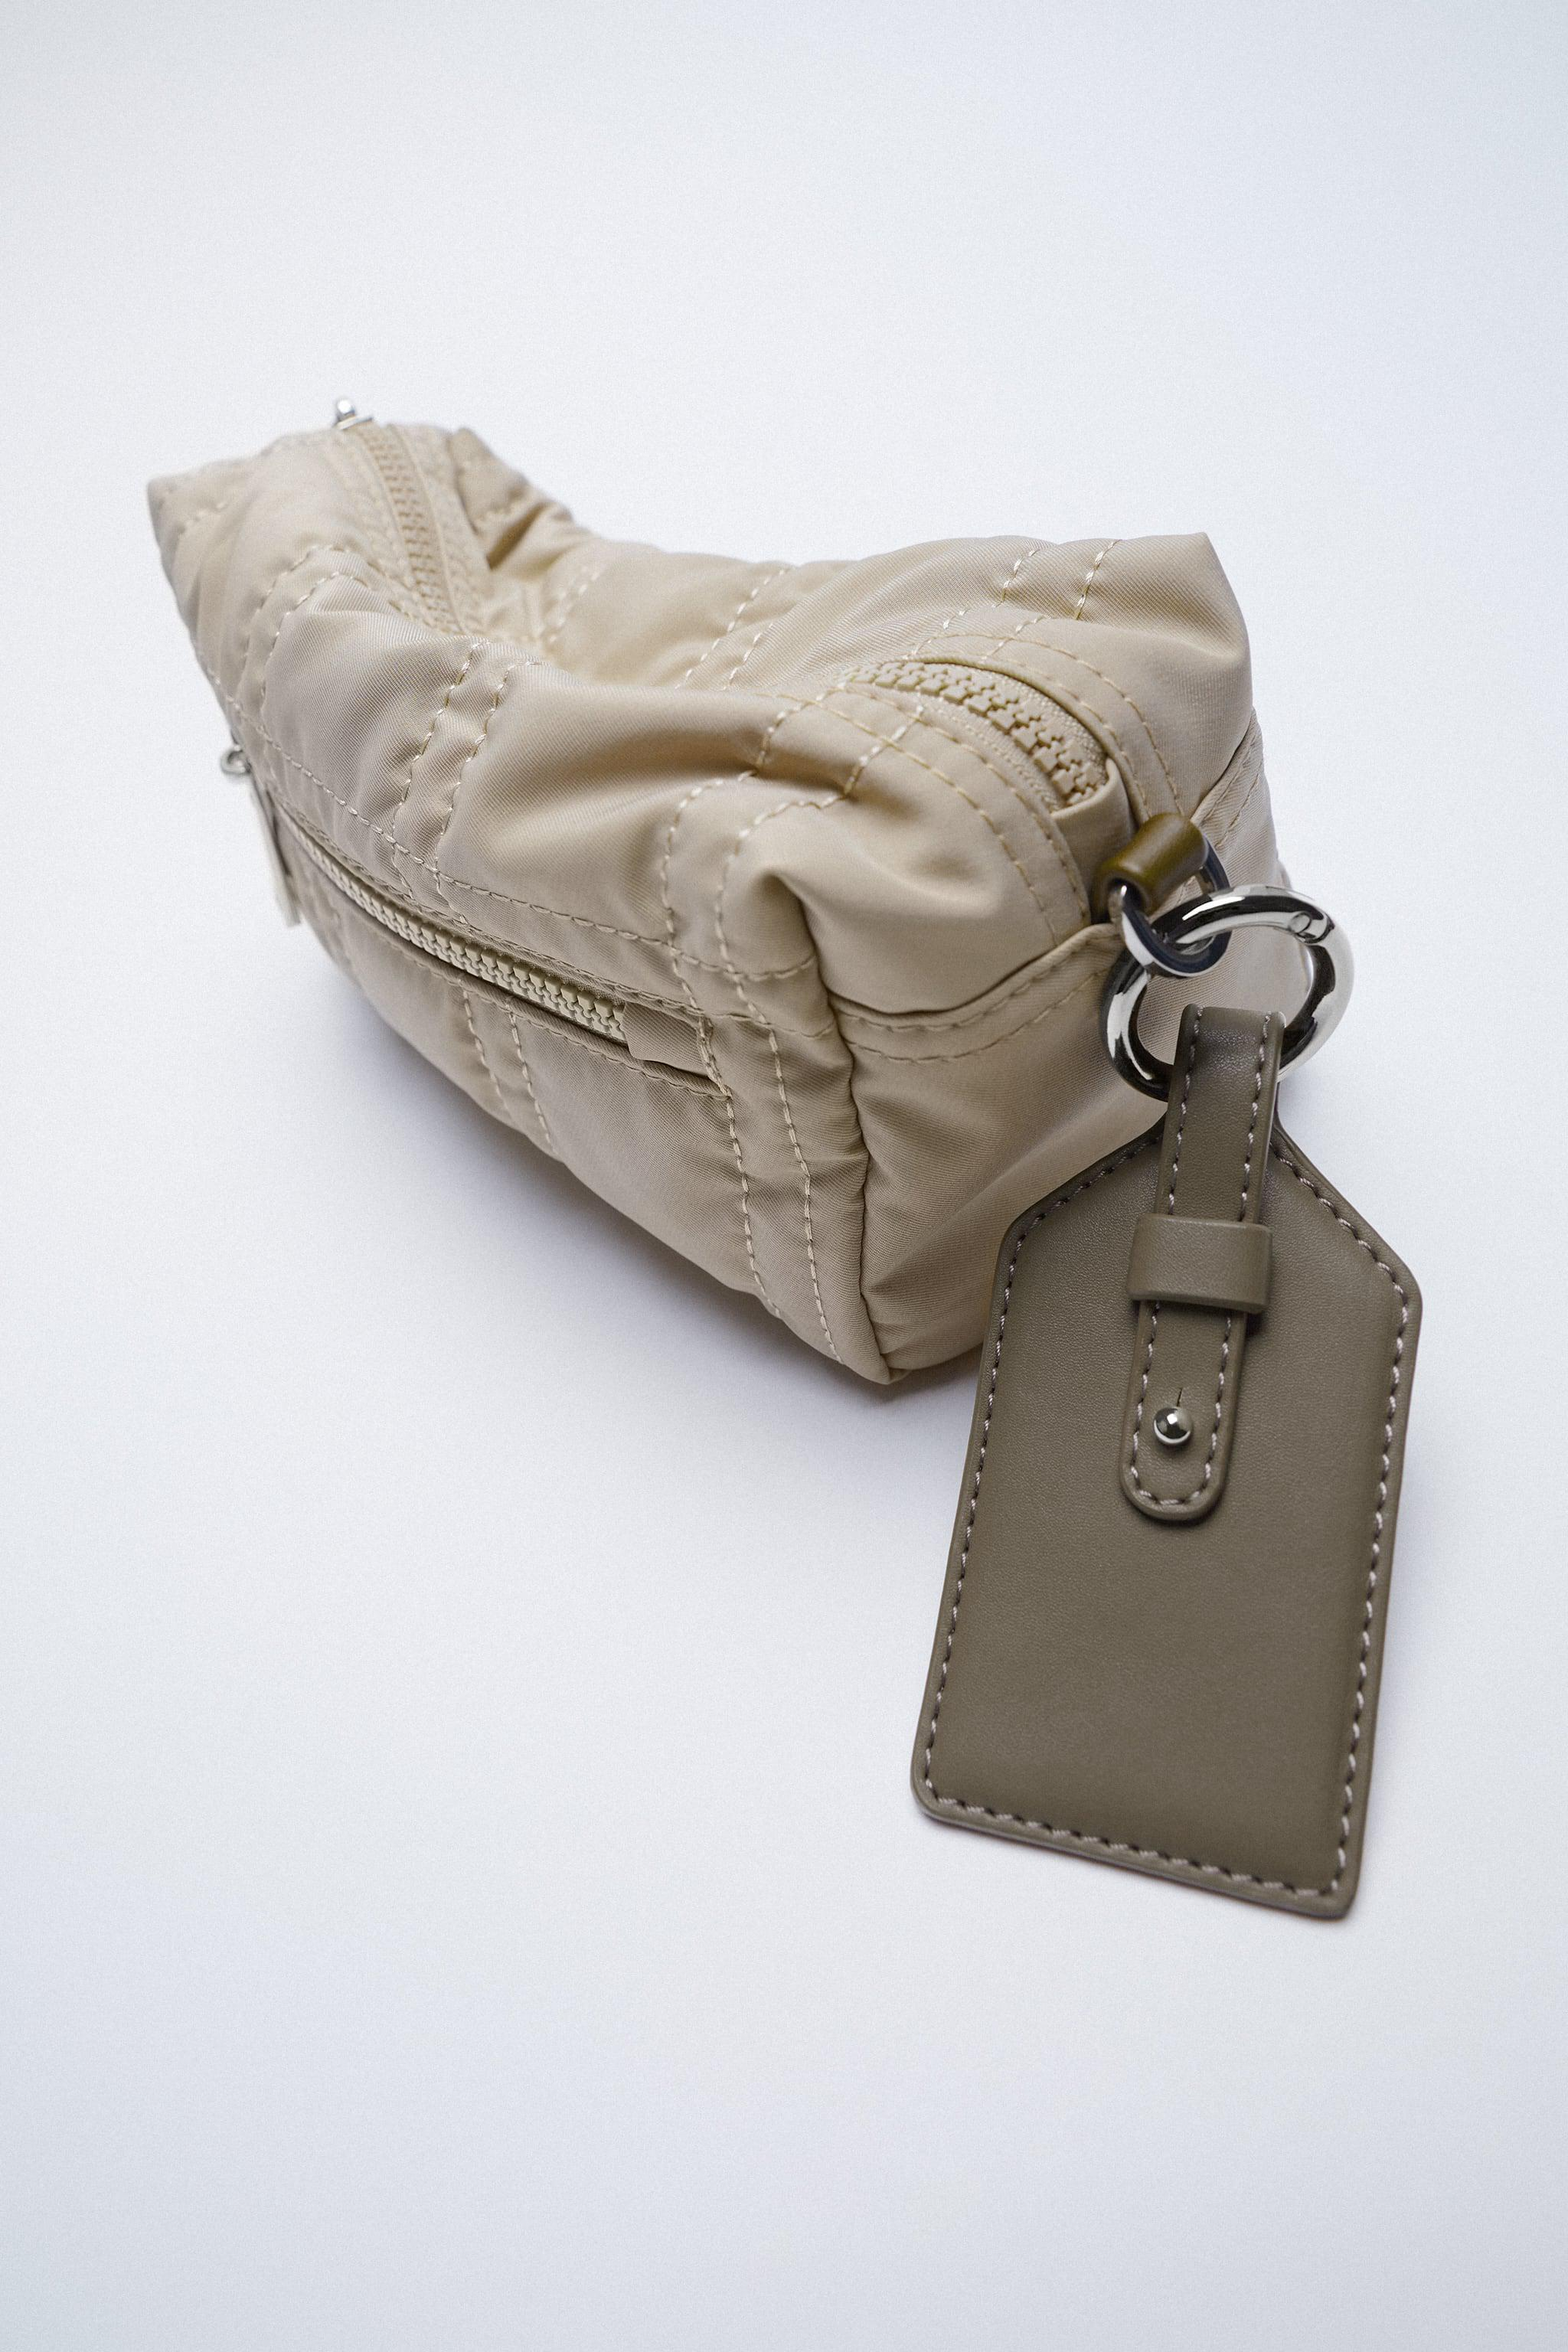 NYLON TOILETRY BAG WITH TOPSTITCHING 1